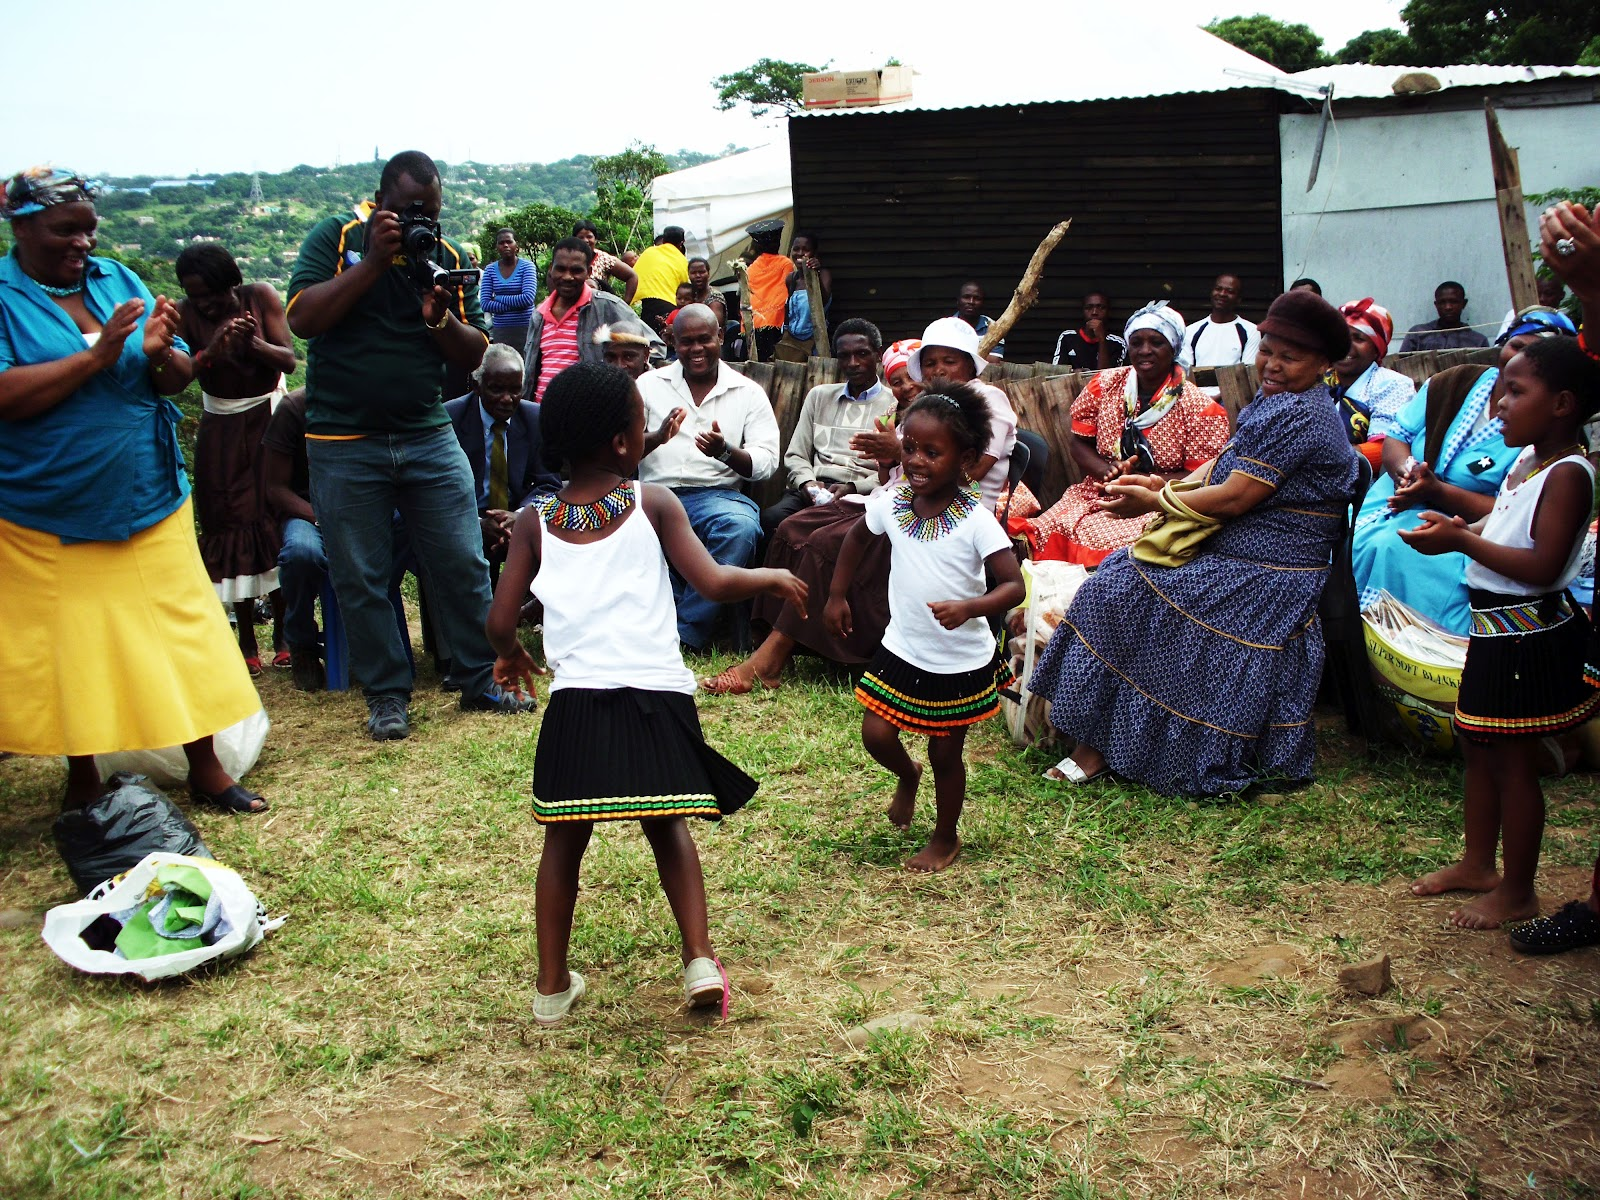 zulu culture The zulu culture in the province of kwazulu-natal is one that has shaped the local history and heritage to a large extent visitors will, no doubt, want to.